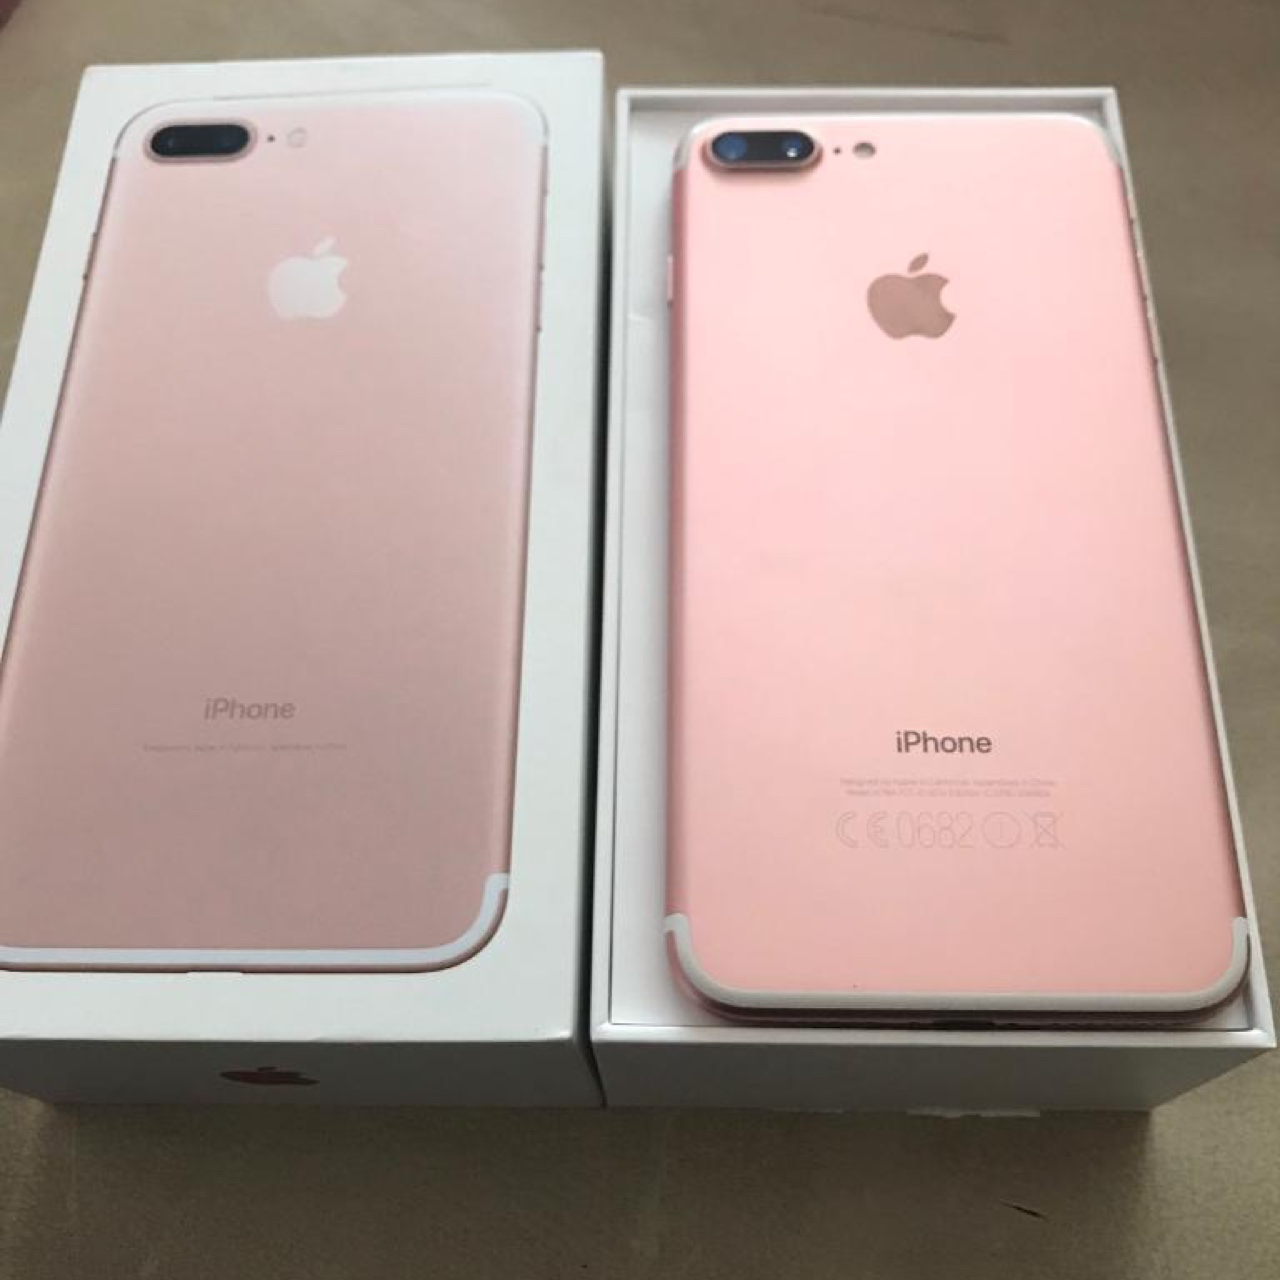 Brand new iPhone 7 plus rose gold 256 GB. Price is , Depop